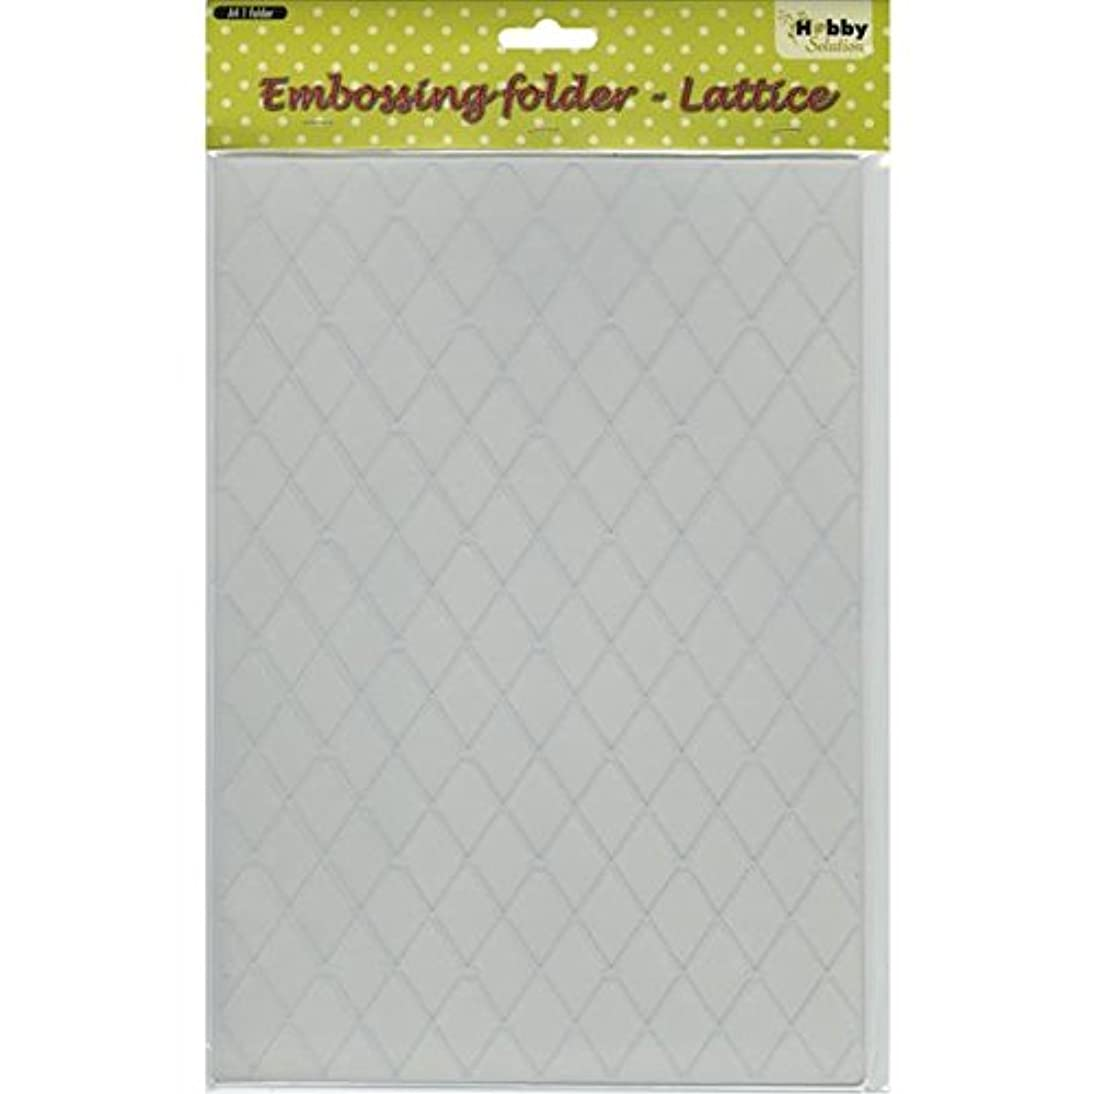 Ecstasy Crafts Nellie's Choice Embossing Folder, A4-Lattice